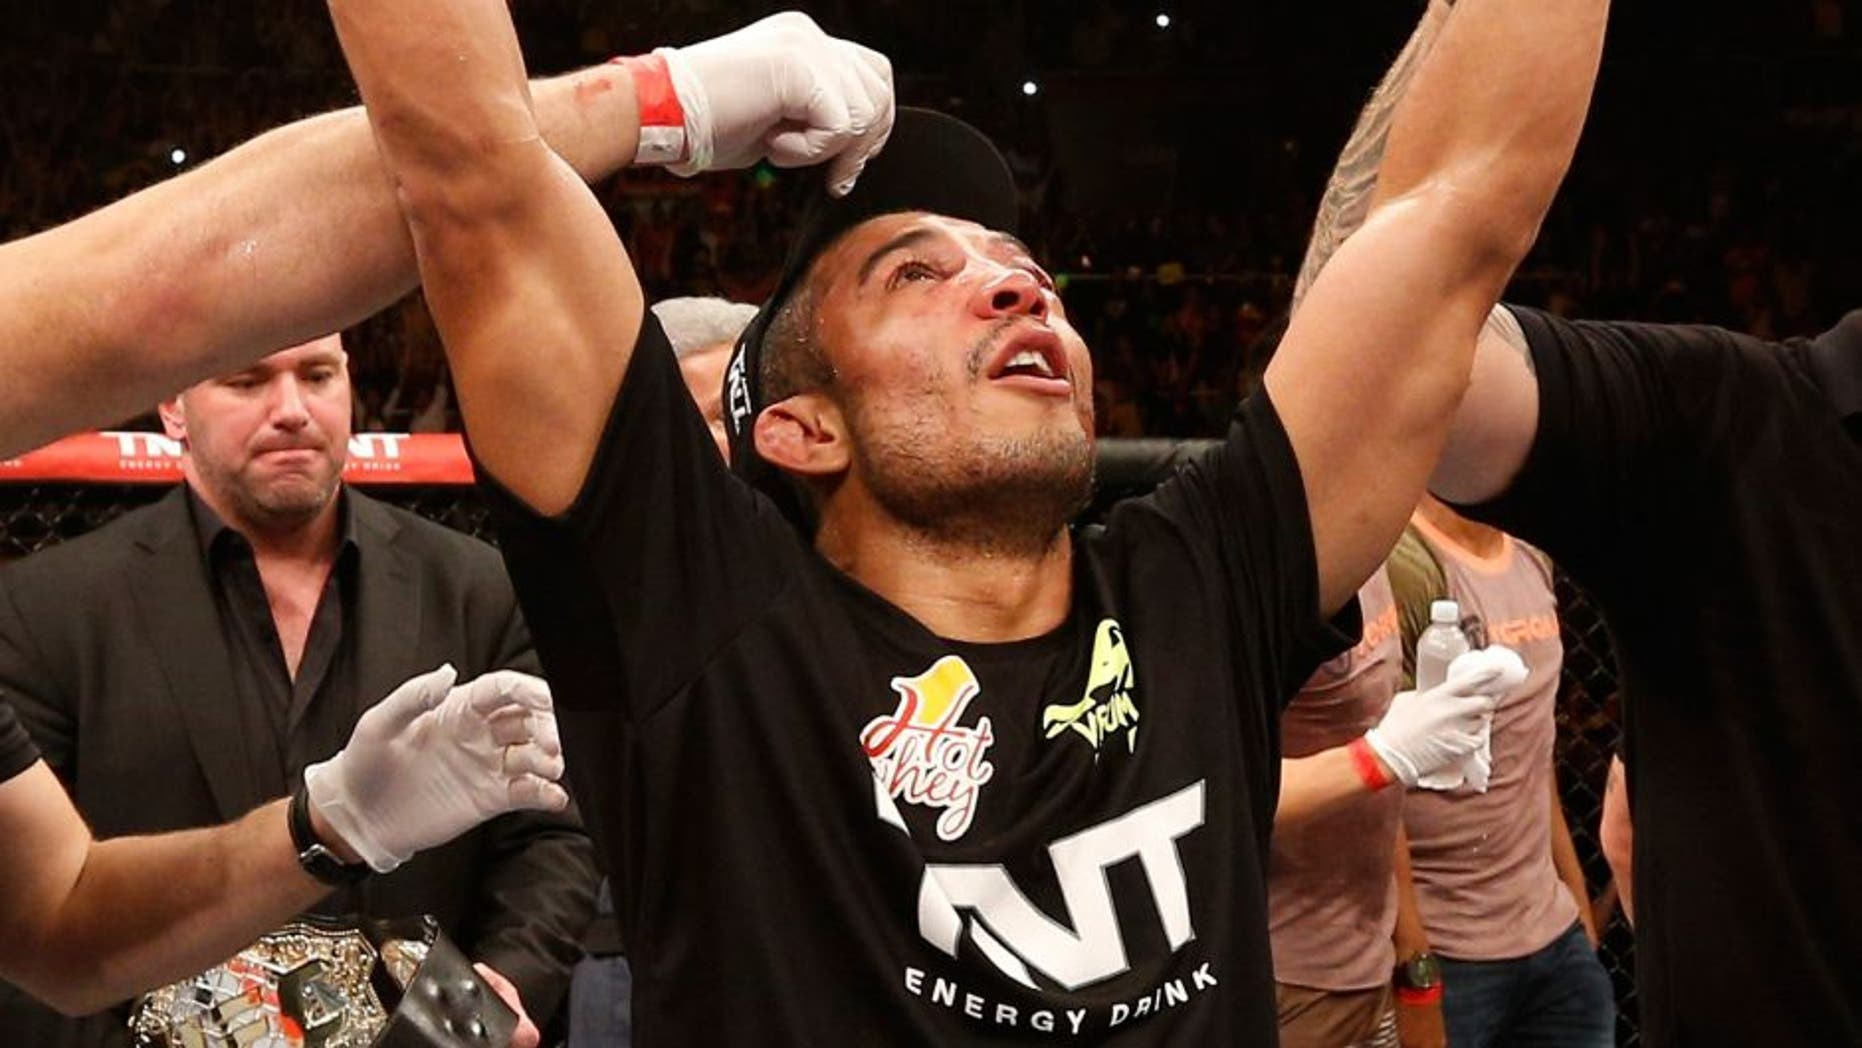 RIO DE JANEIRO, BRAZIL - OCTOBER 25: Jose Aldo of Brazil celebrates after his unanimous-decision victory over Chad Mendes in their featherweight championship bout during the UFC 179 event at Maracanazinho on October 25, 2014 in Rio de Janeiro, Brazil. (Photo by Josh Hedges/Zuffa LLC/Zuffa LLC via Getty Images)